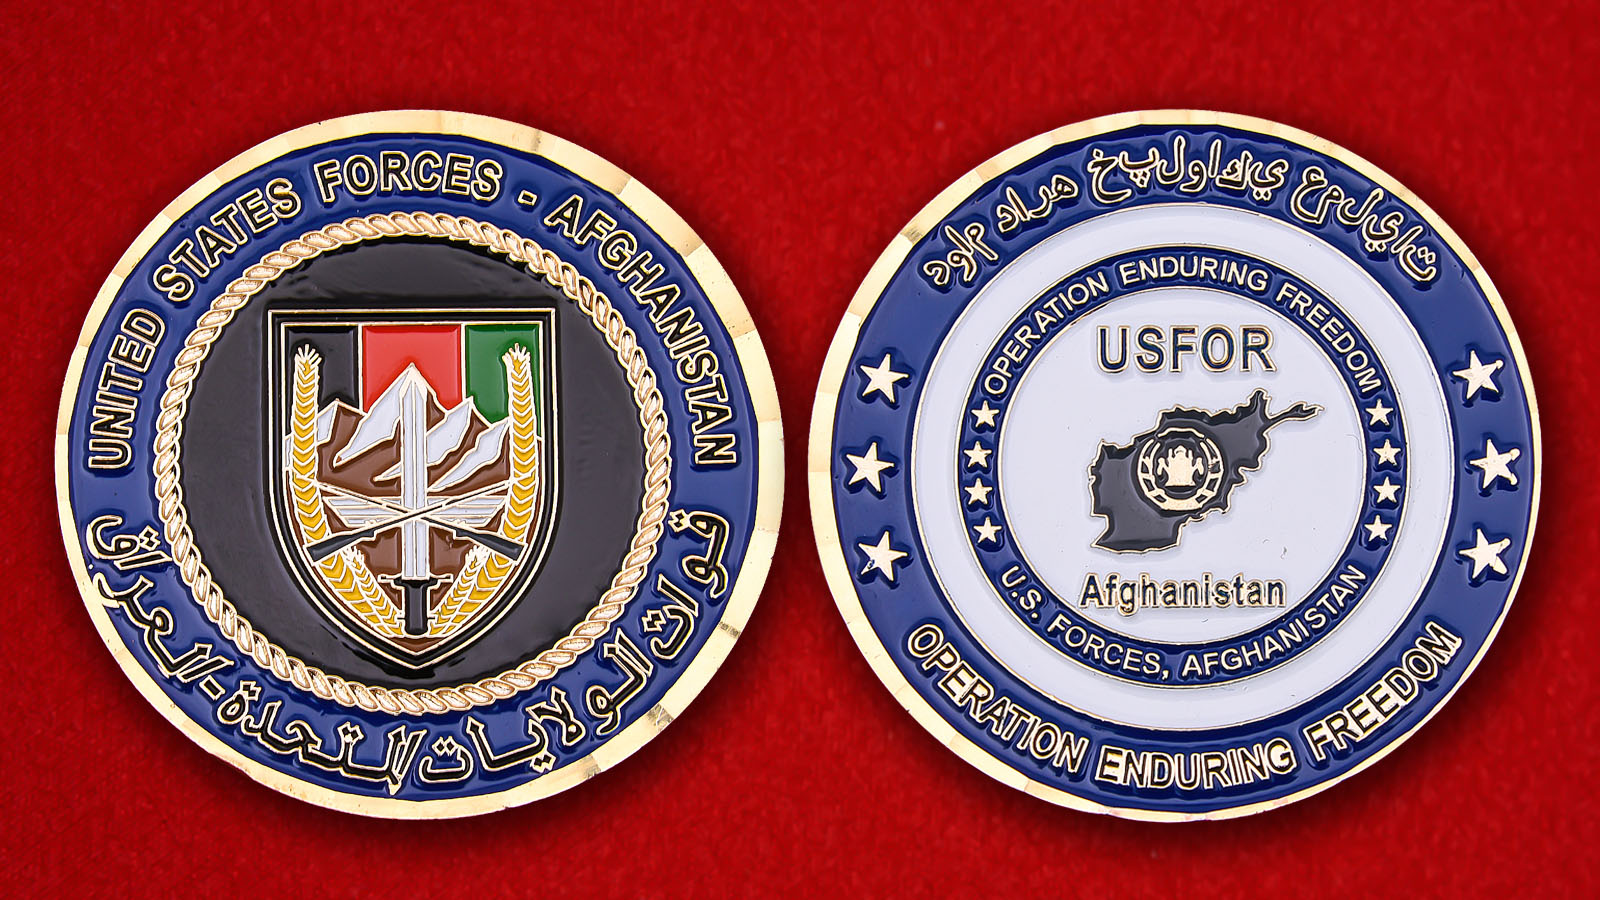 US Forces, Afghanistan Operation Enduring Freedom Challenge Coin